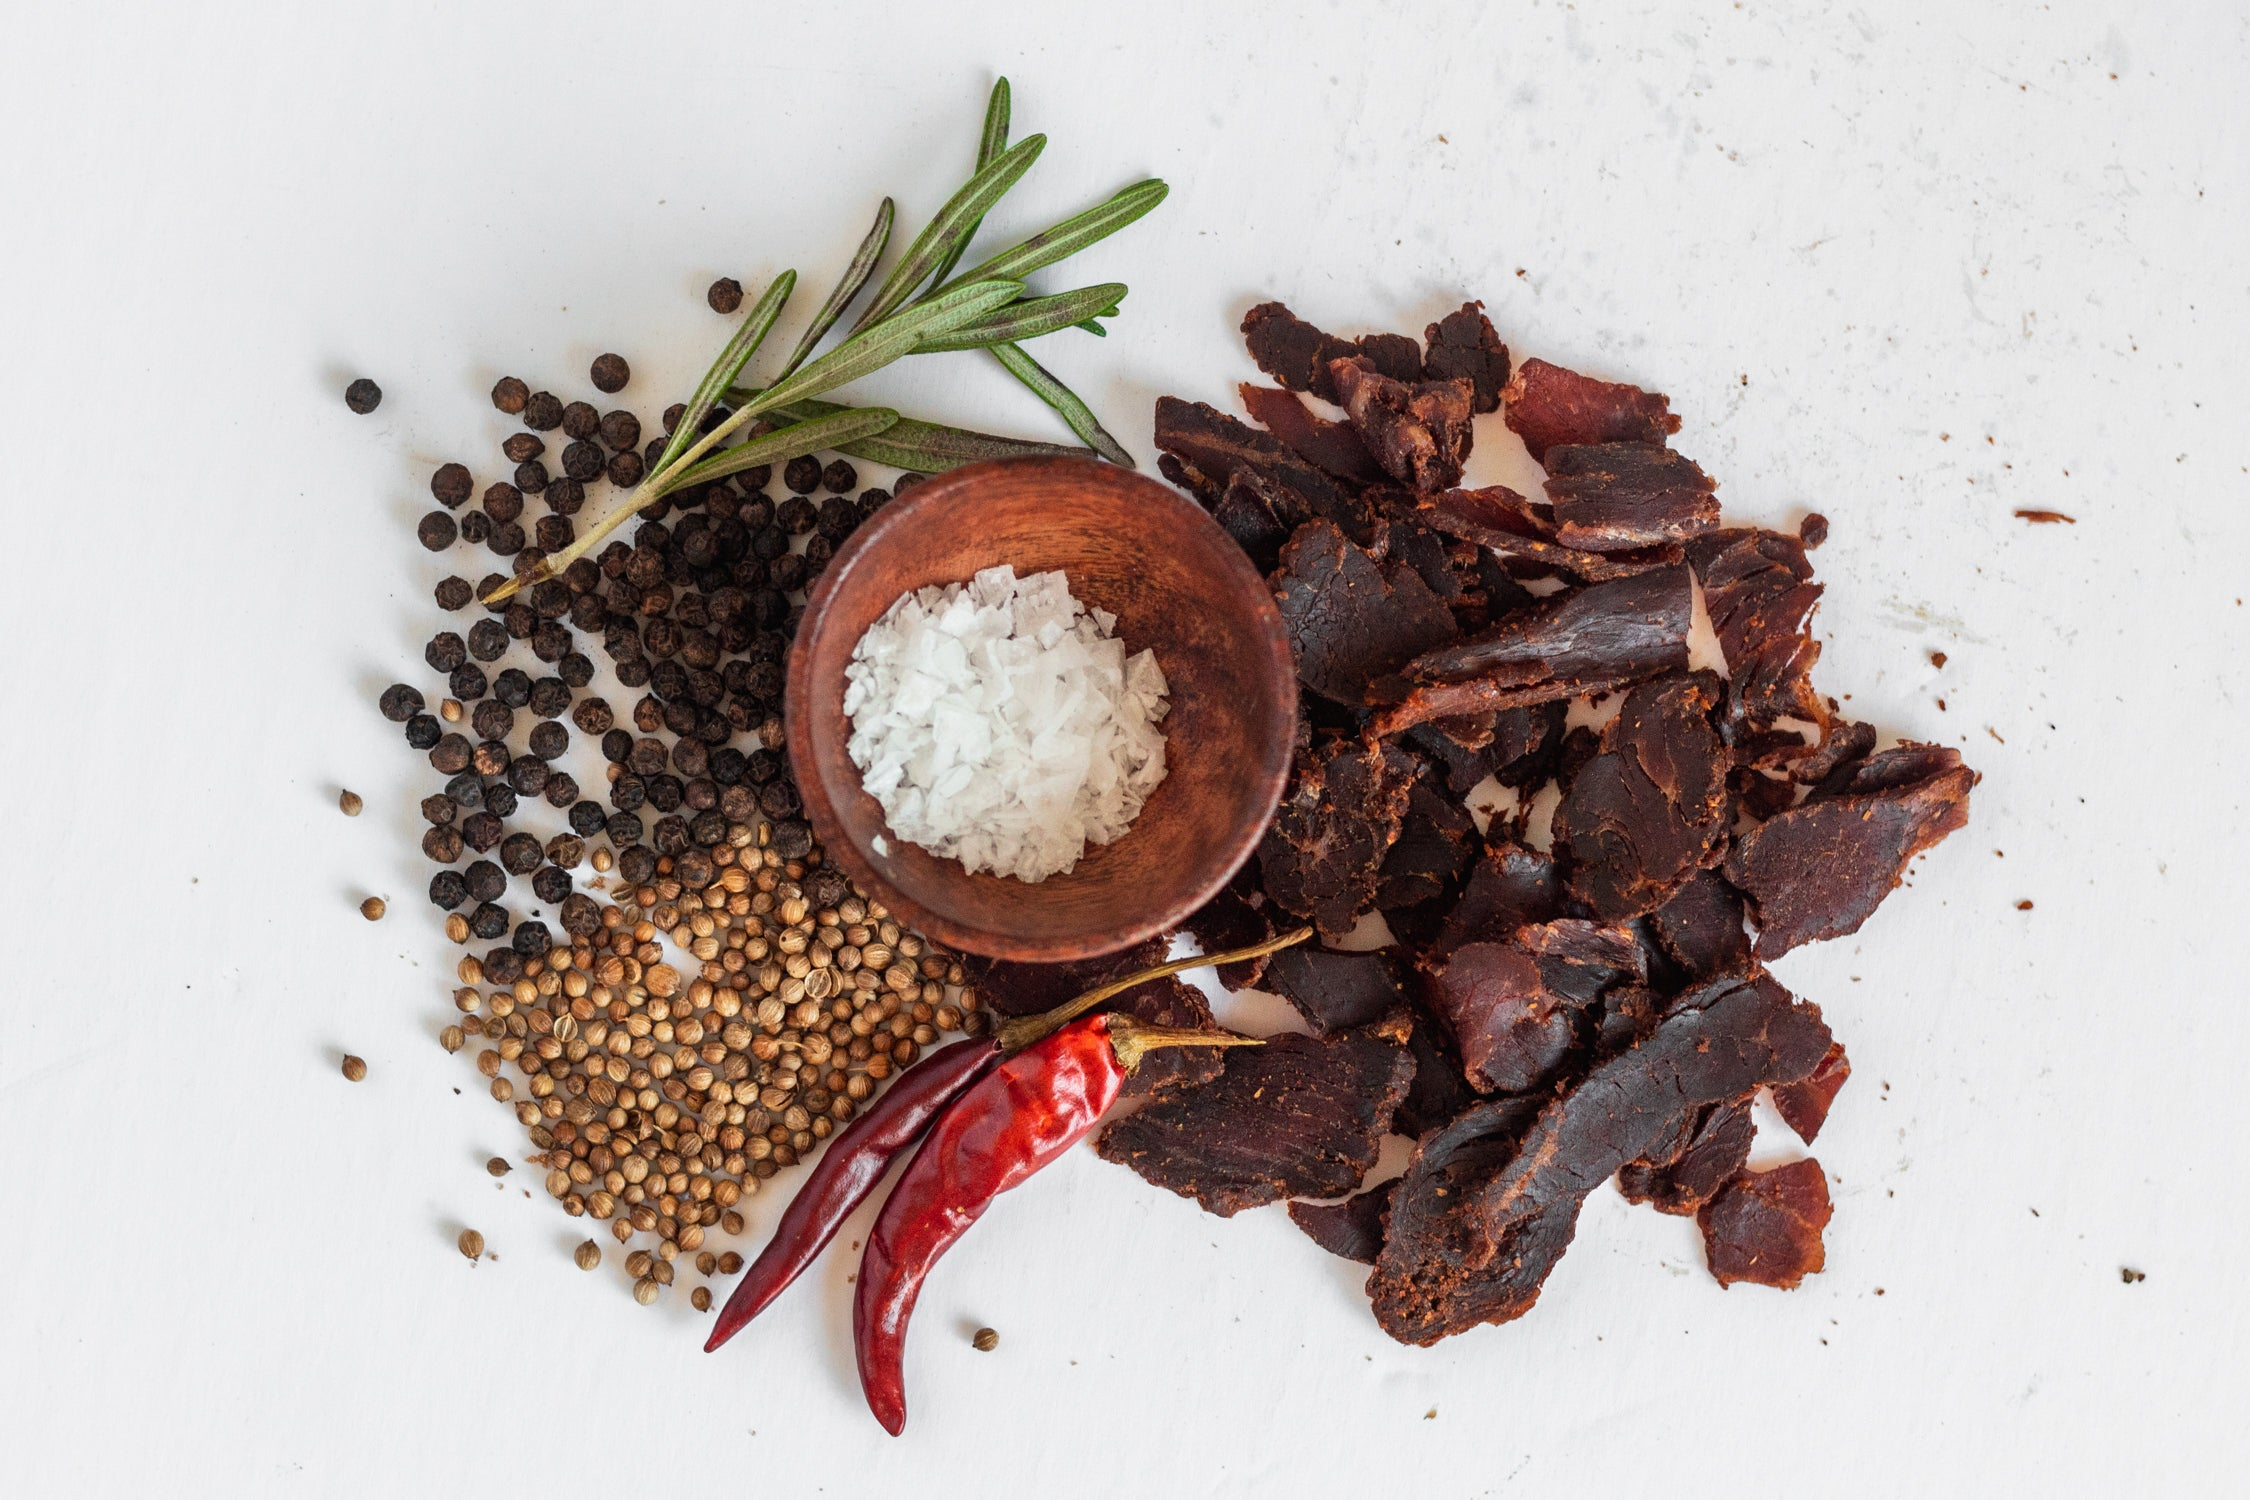 jerky and ingredients